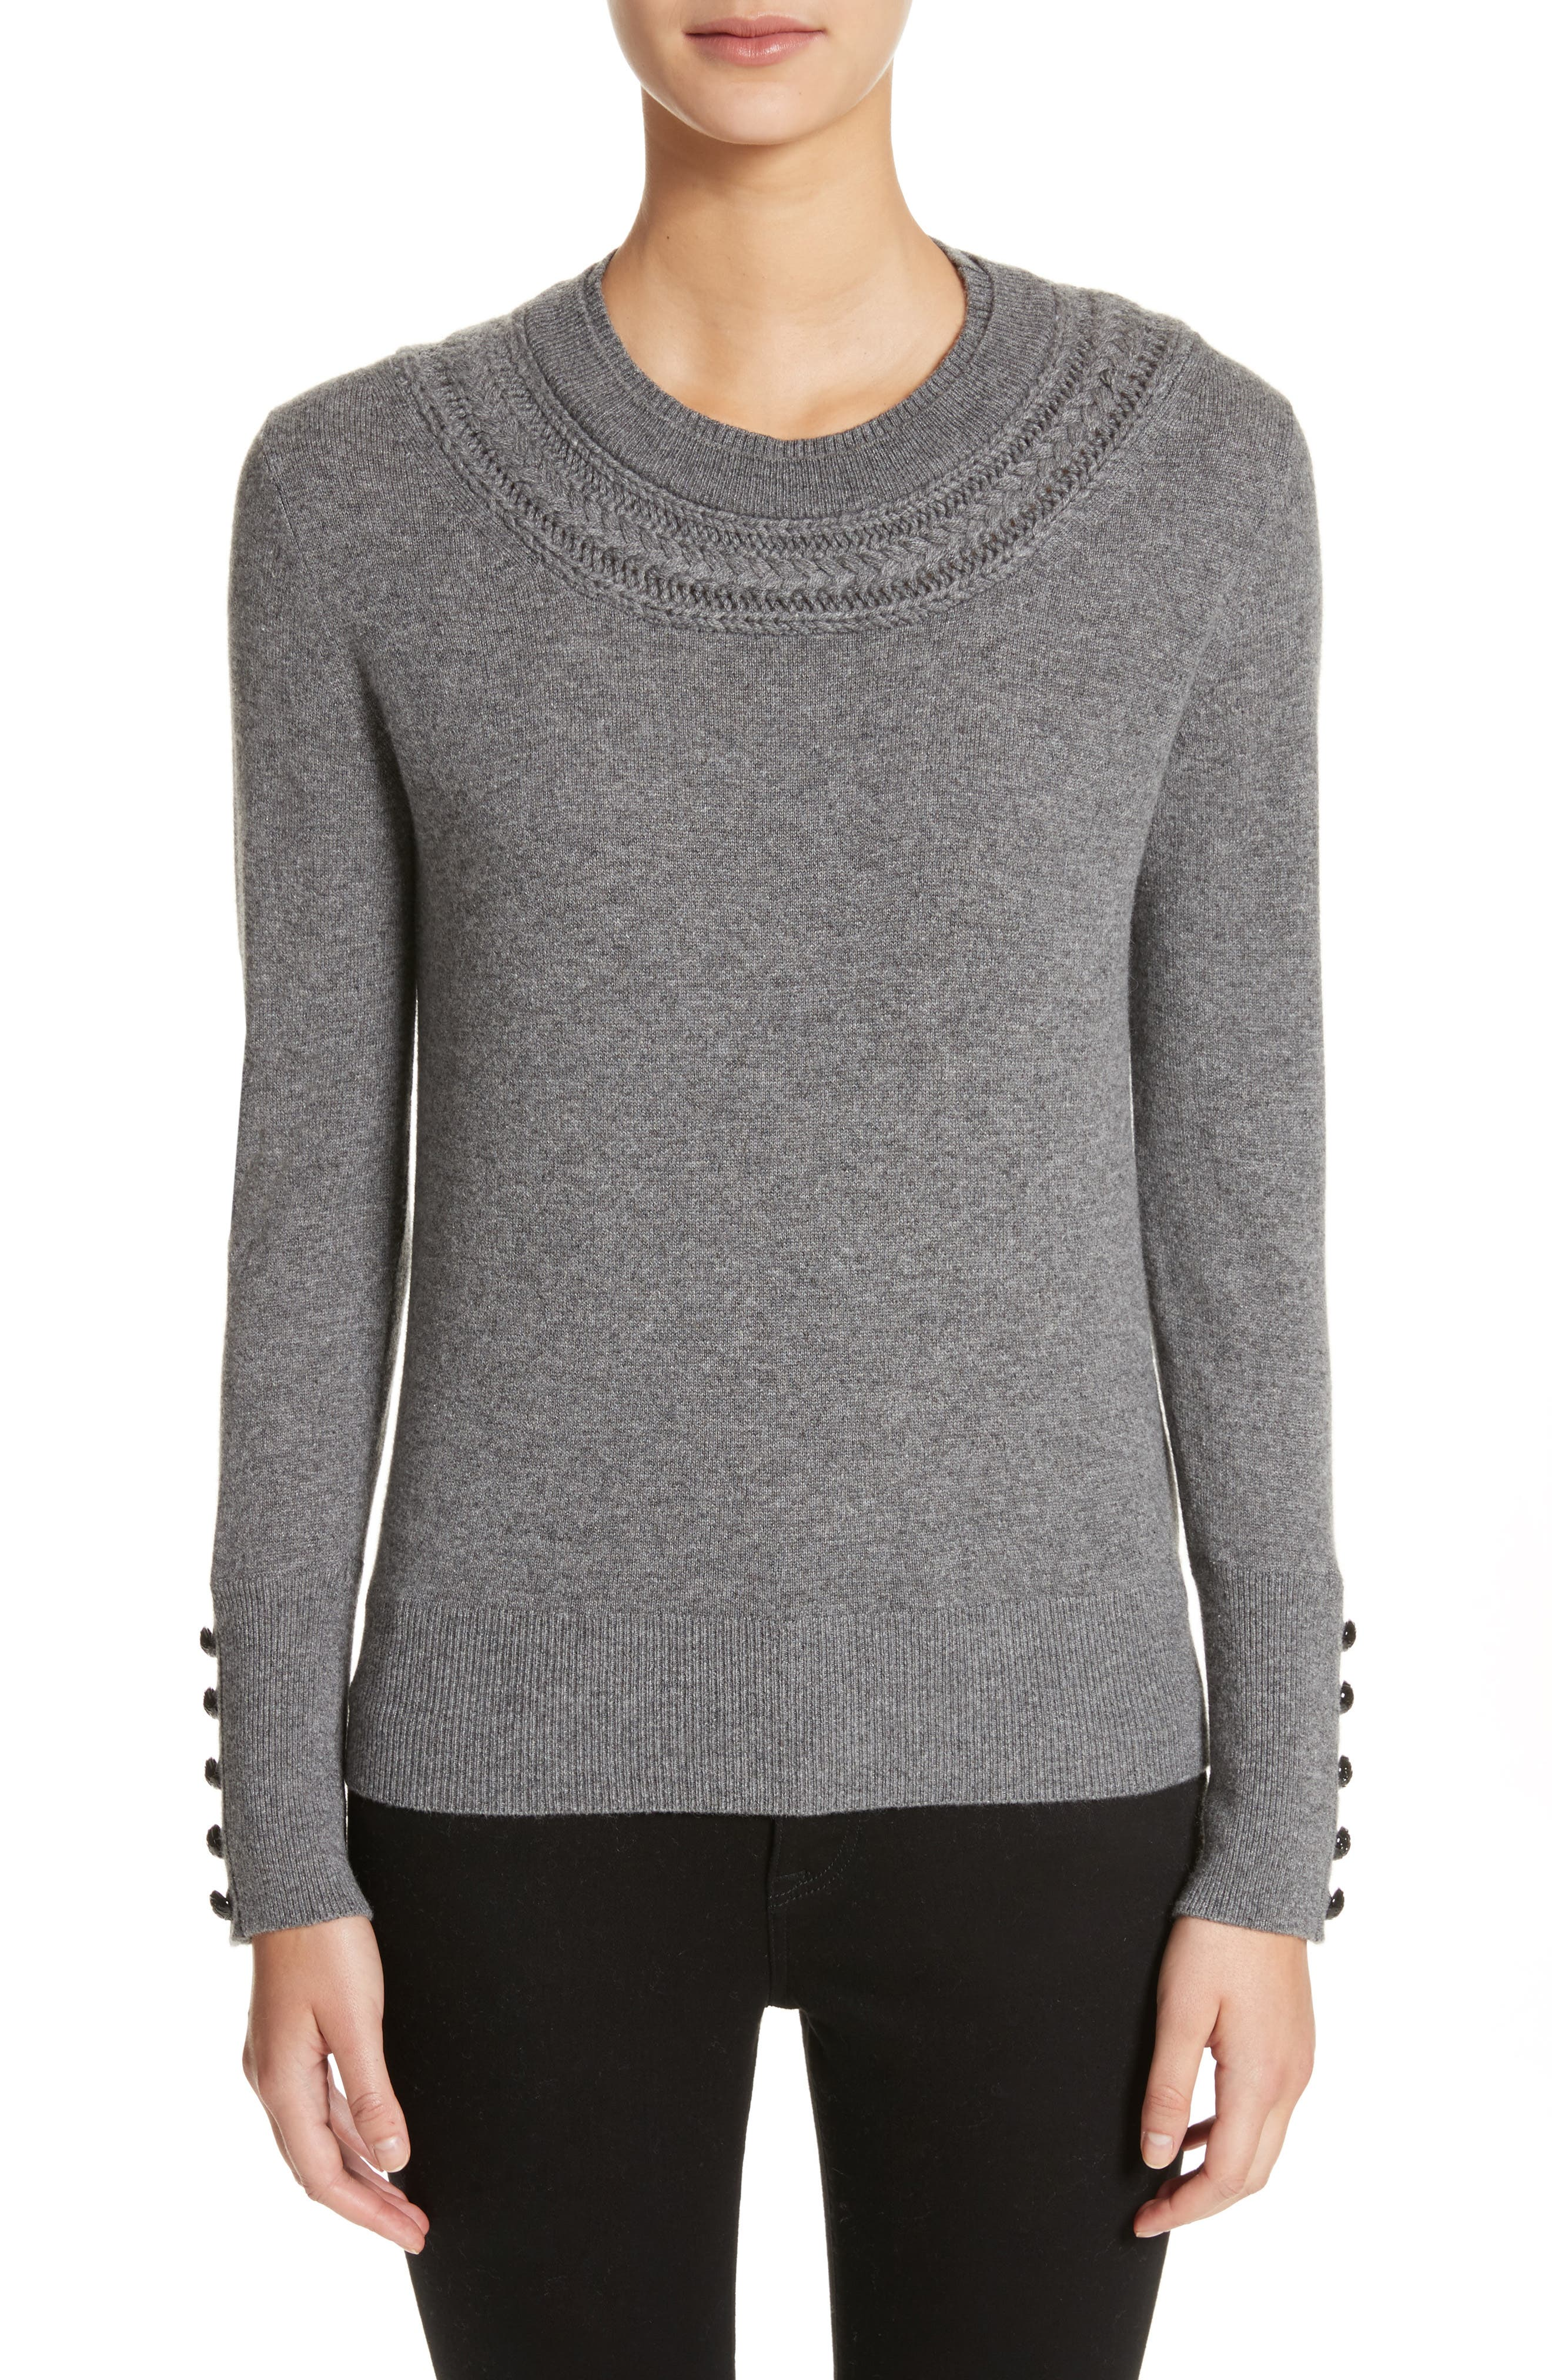 Burberry Carapelle Cashmere Sweater